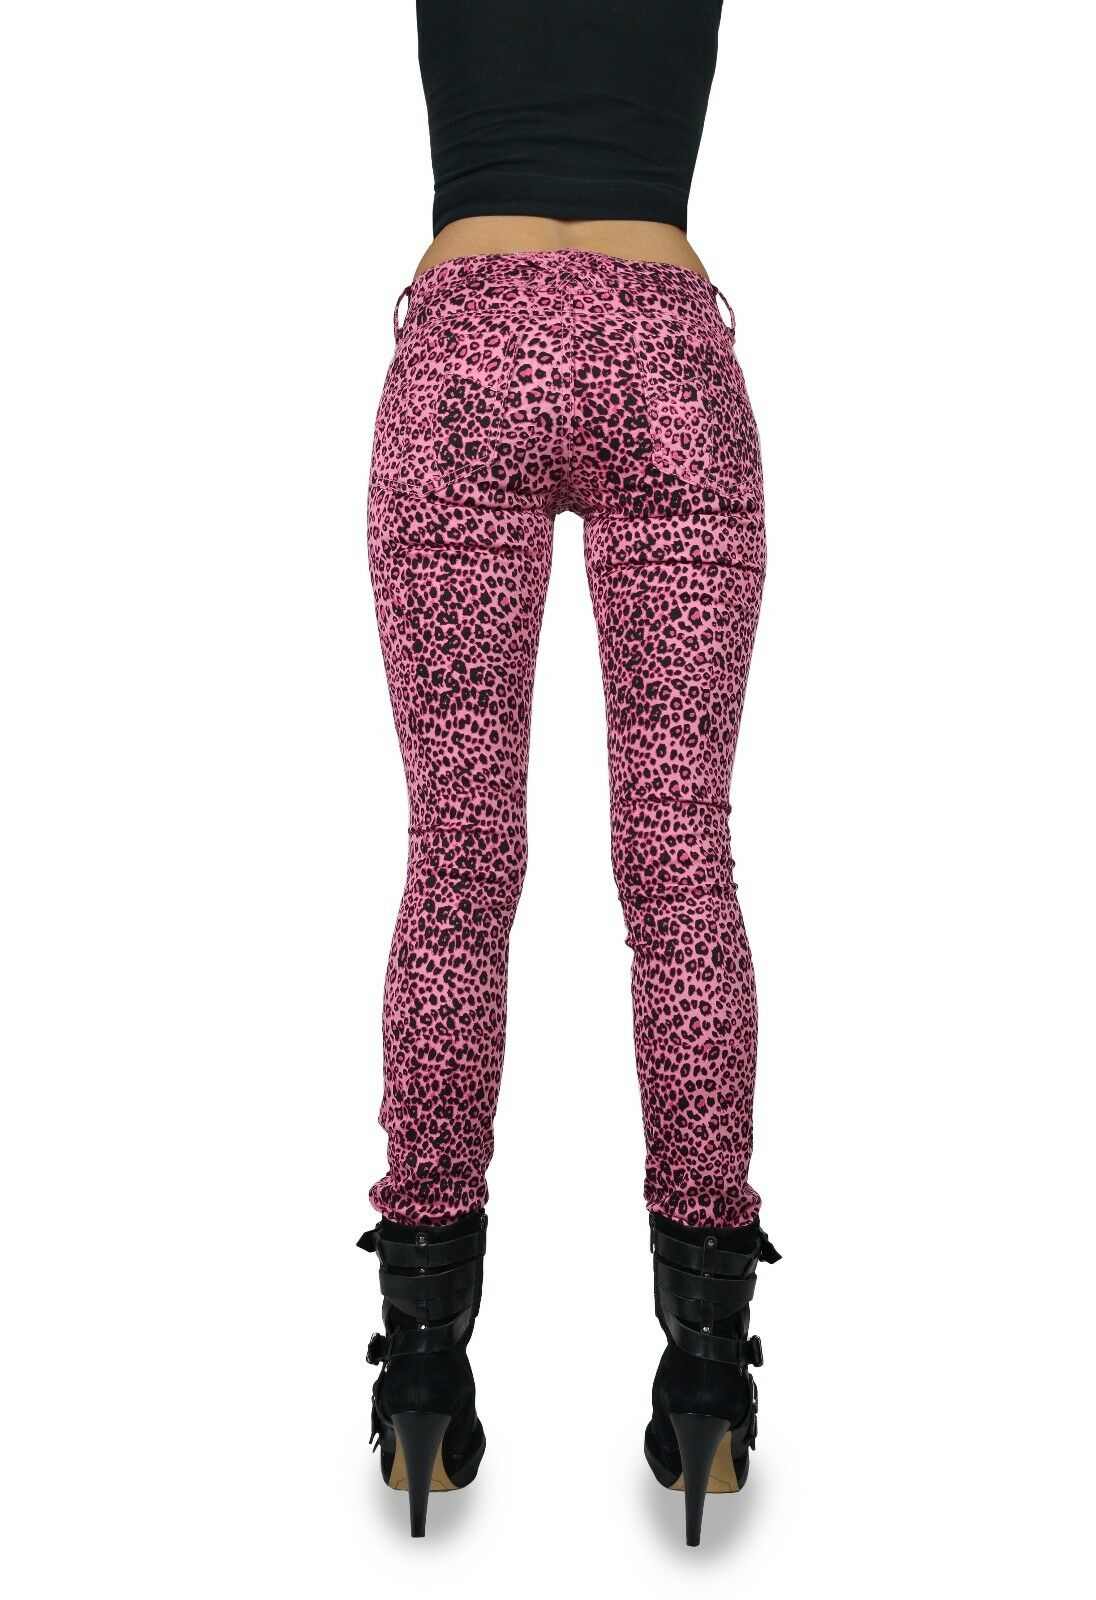 TRIPP EMO GOTH ROCKER PINK CHEETAH CYBER PUNK JEAN PANTS HIPPIE SKINNY IS6235P Clothing, Shoes & Accessories